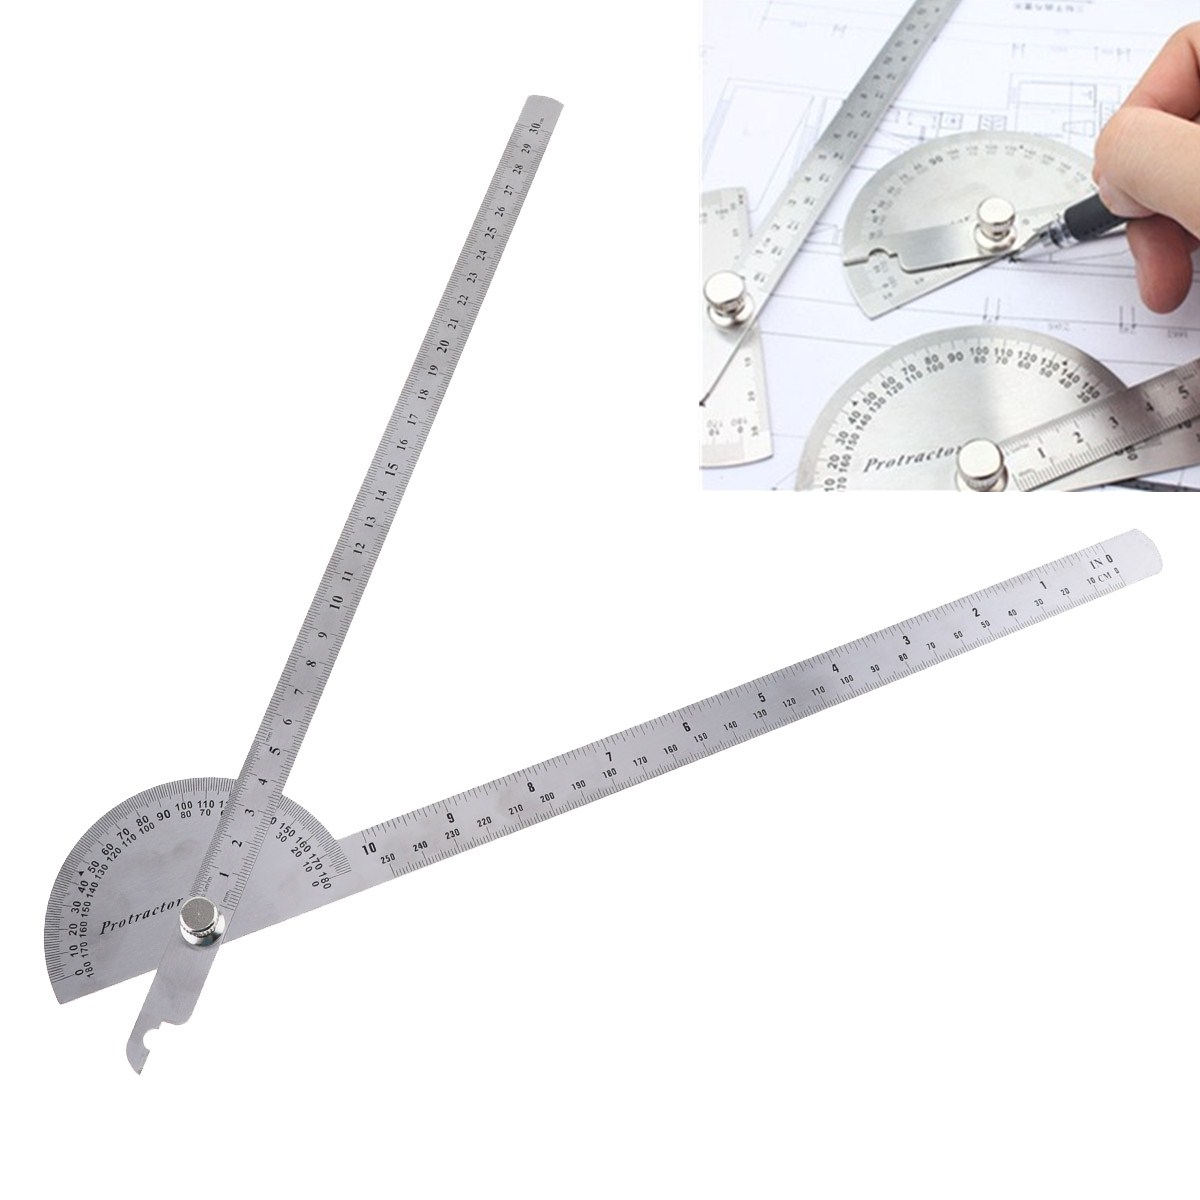 180 Degree 250 x 300mm Stainless Steel Adjustable Double-arm Angle Ruler with Round Head Rotary Protractor Tool for Measurement